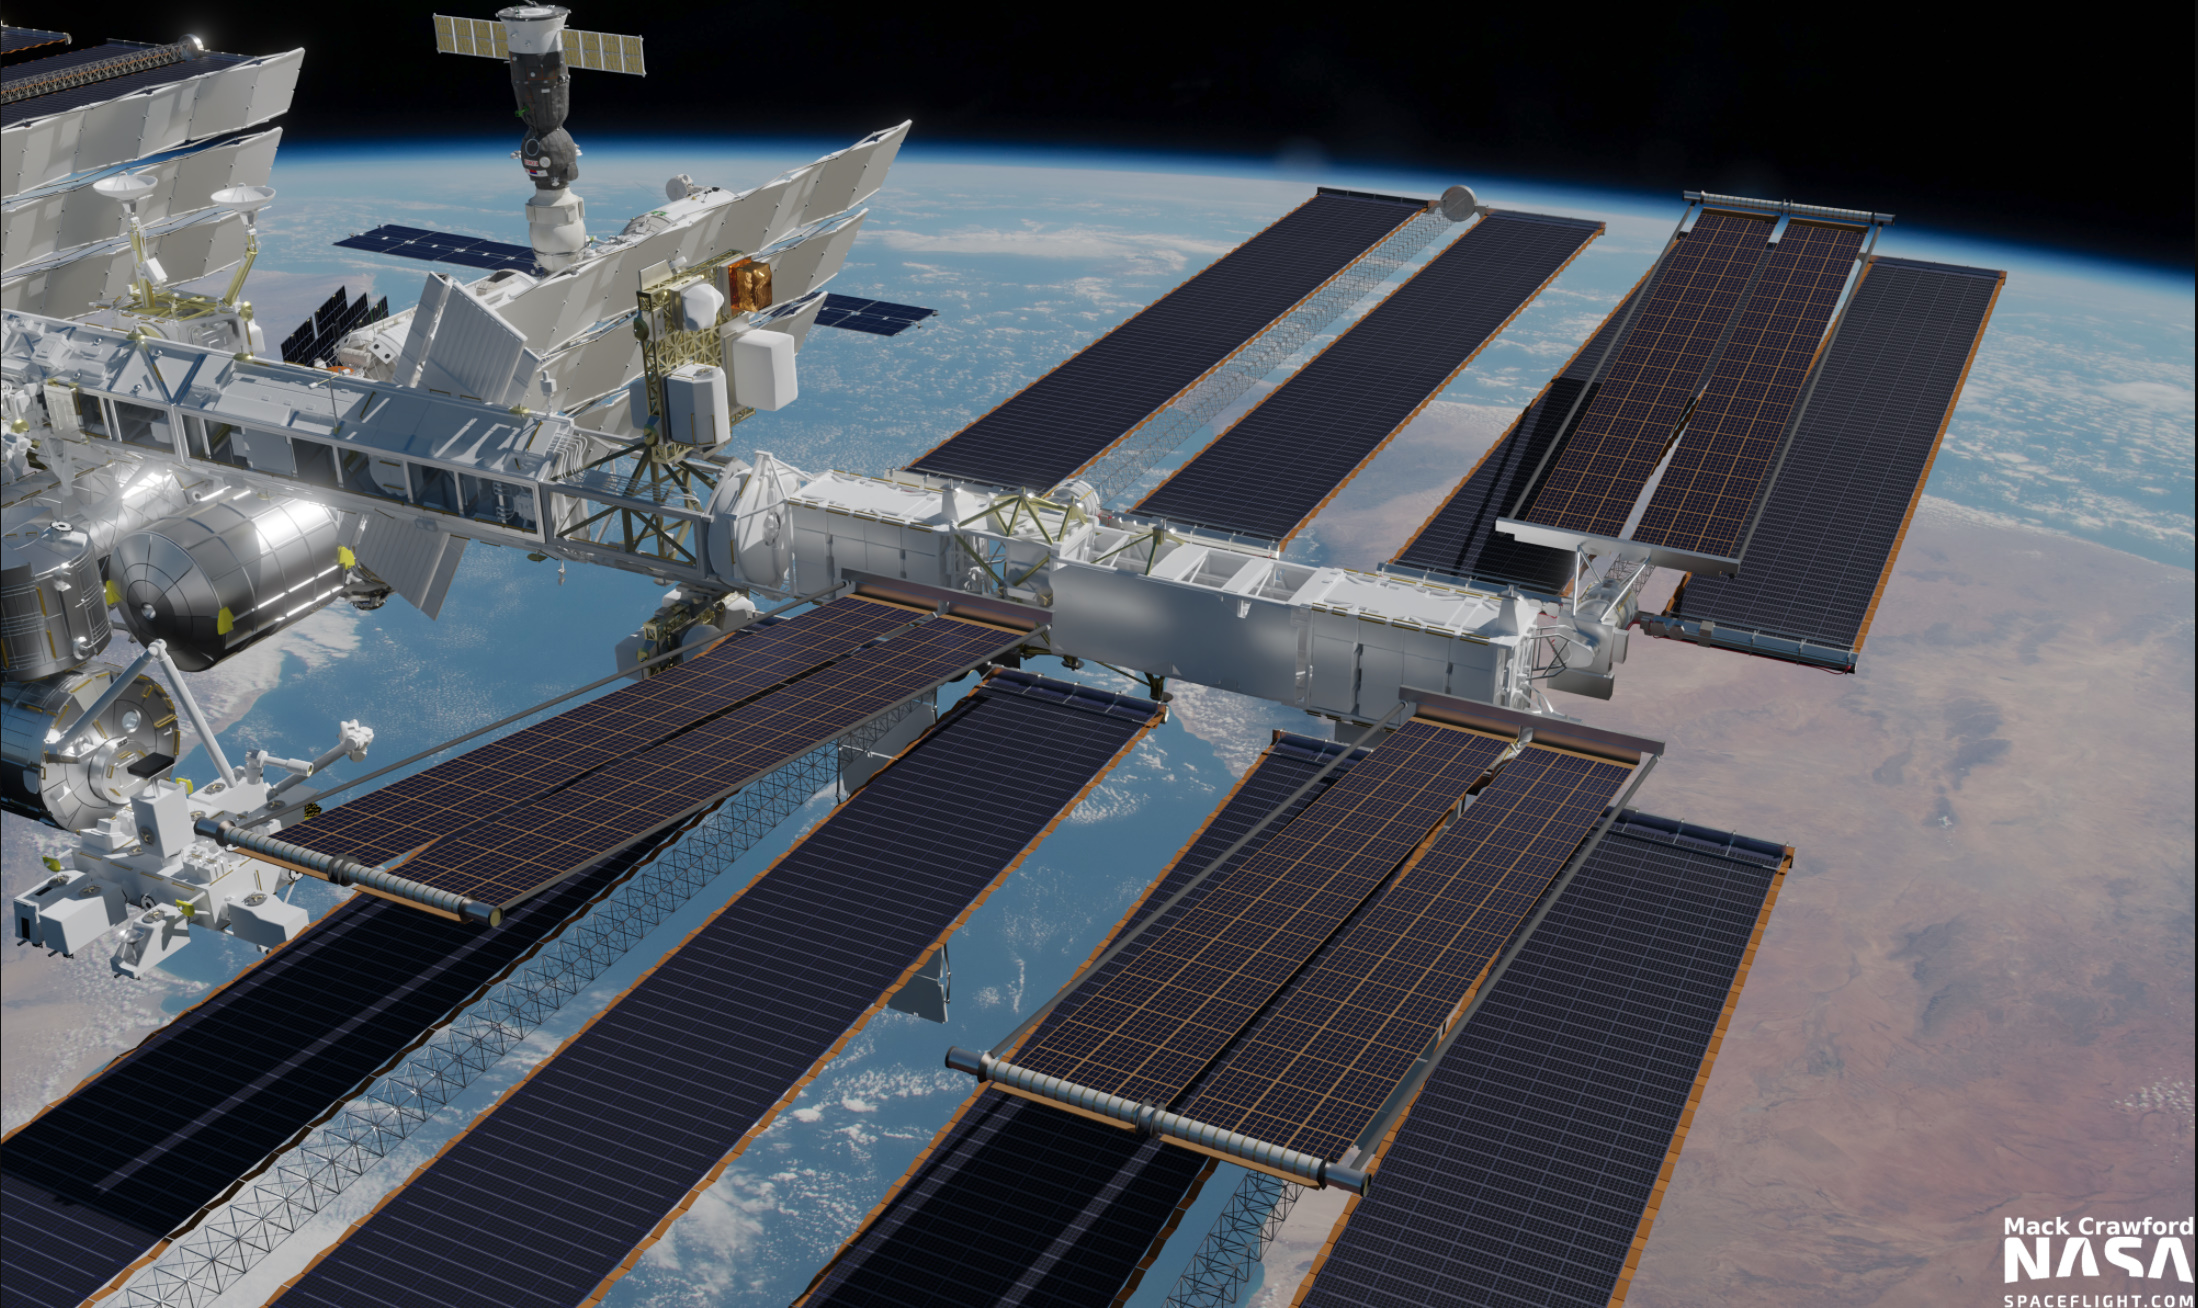 ESA/NASA complete ISS spacewalk to install first new solar array